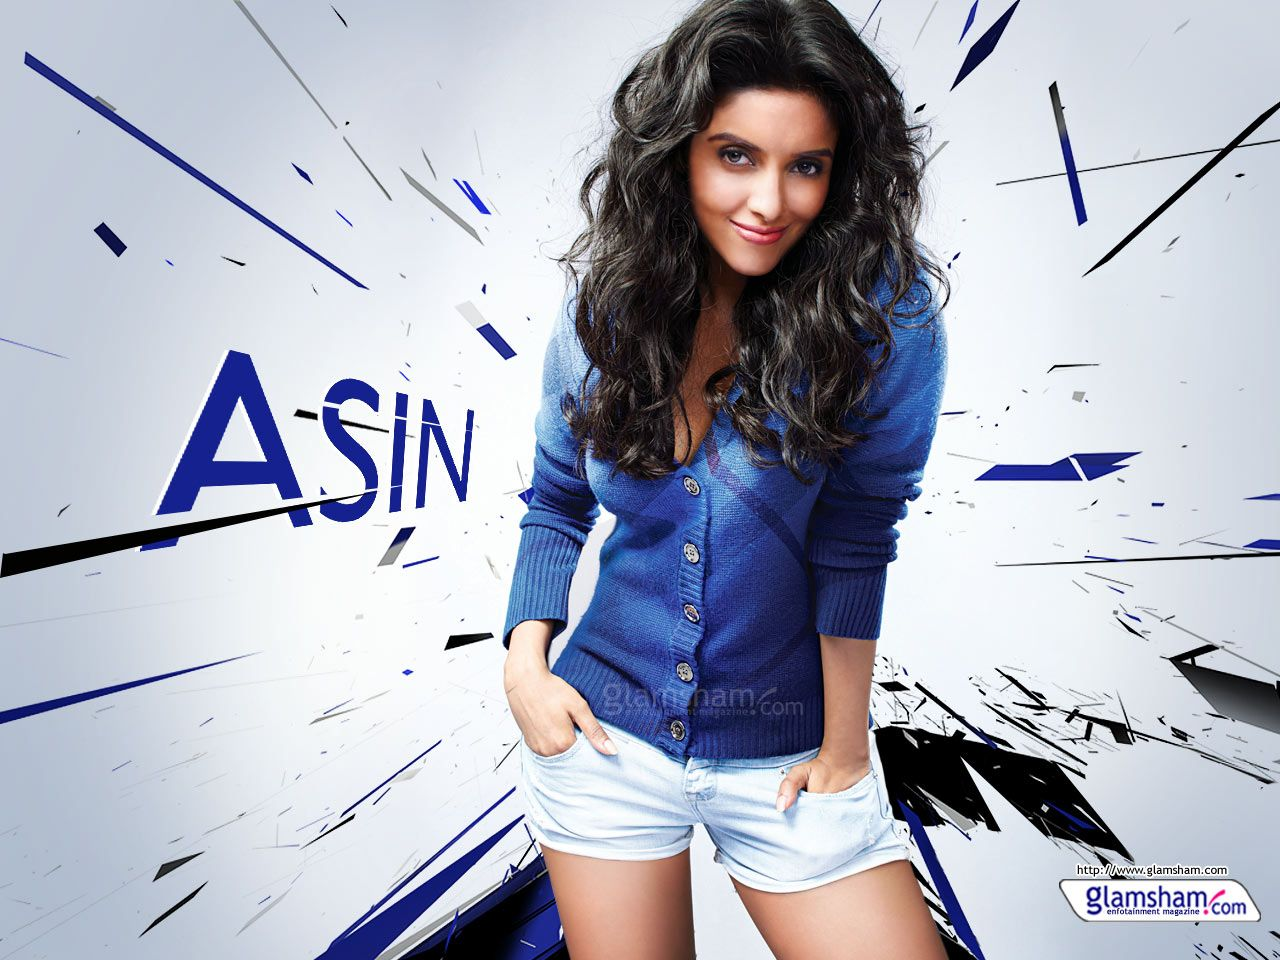 asin-wallpaper-32-12x9 (1280×960) | asin | pinterest | high